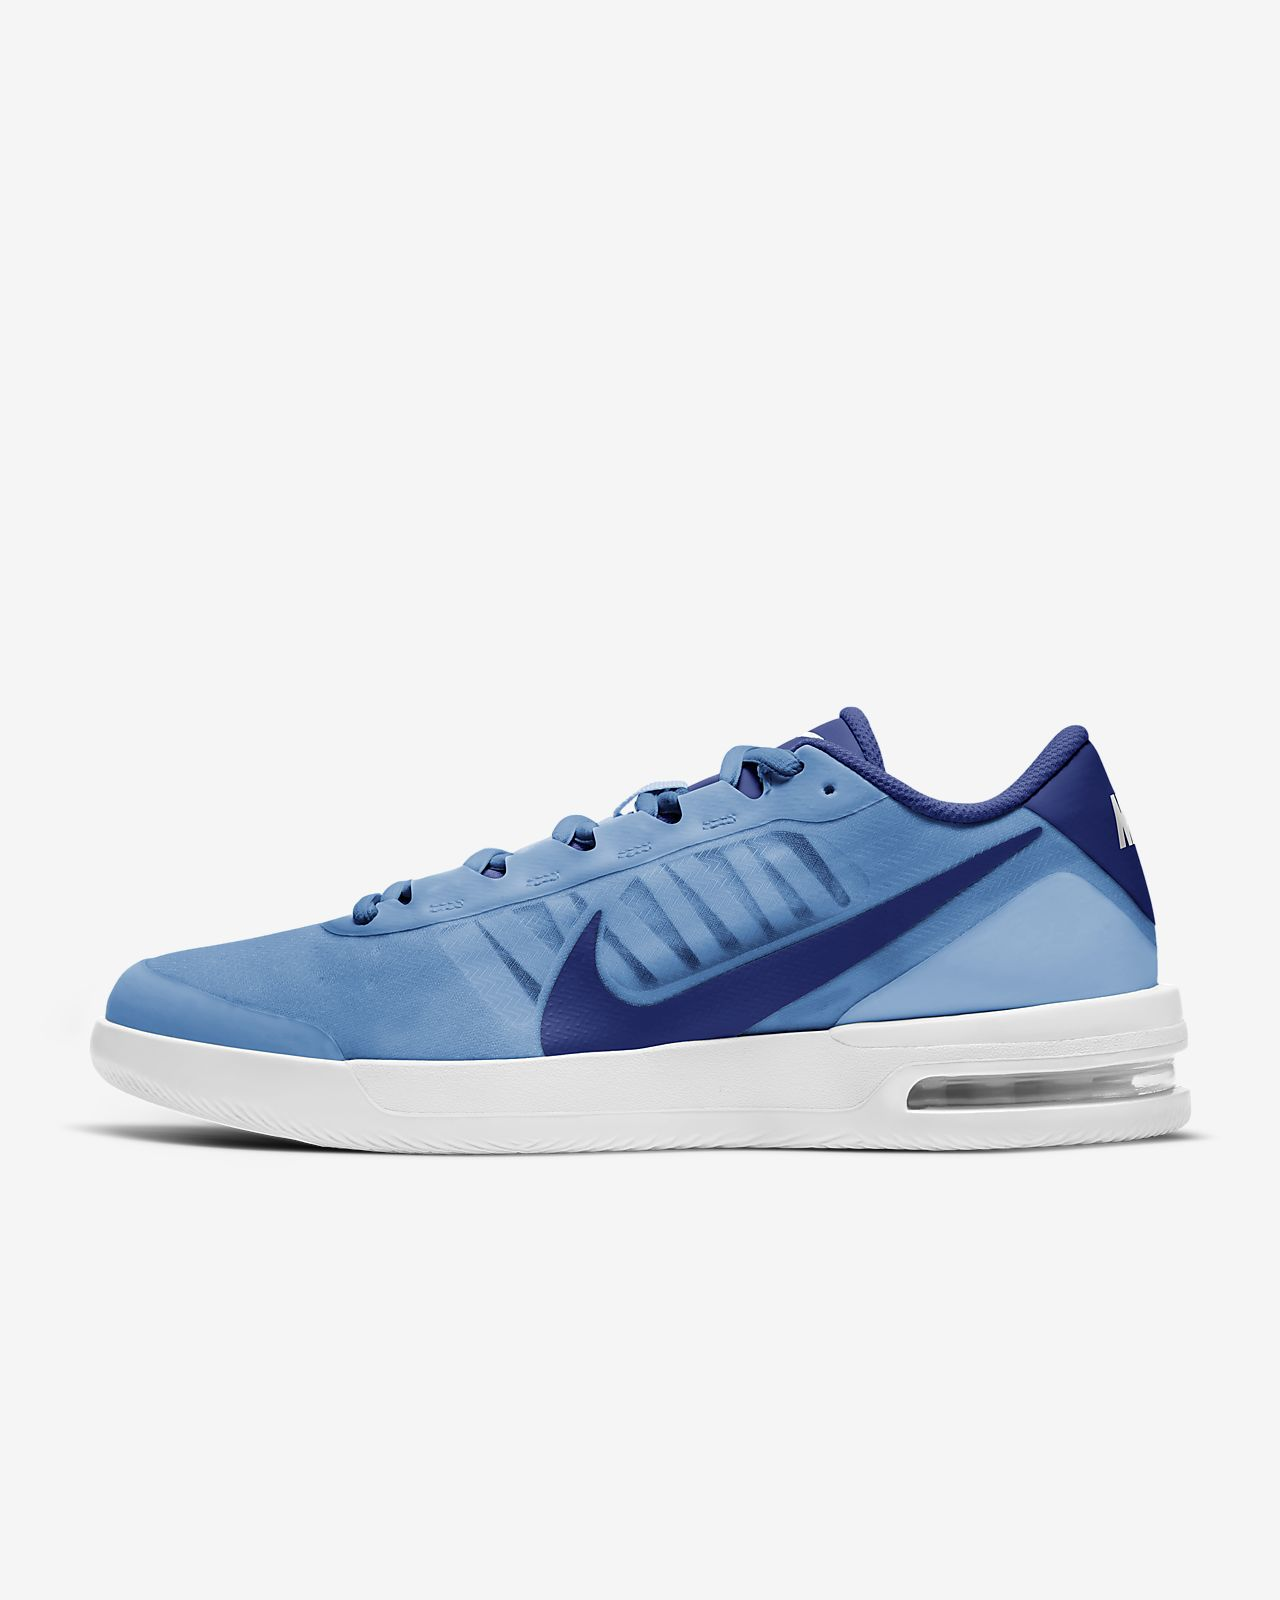 NikeCourt Air Max Vapor Wing MS Men's Multi-Surface Tennis Shoe